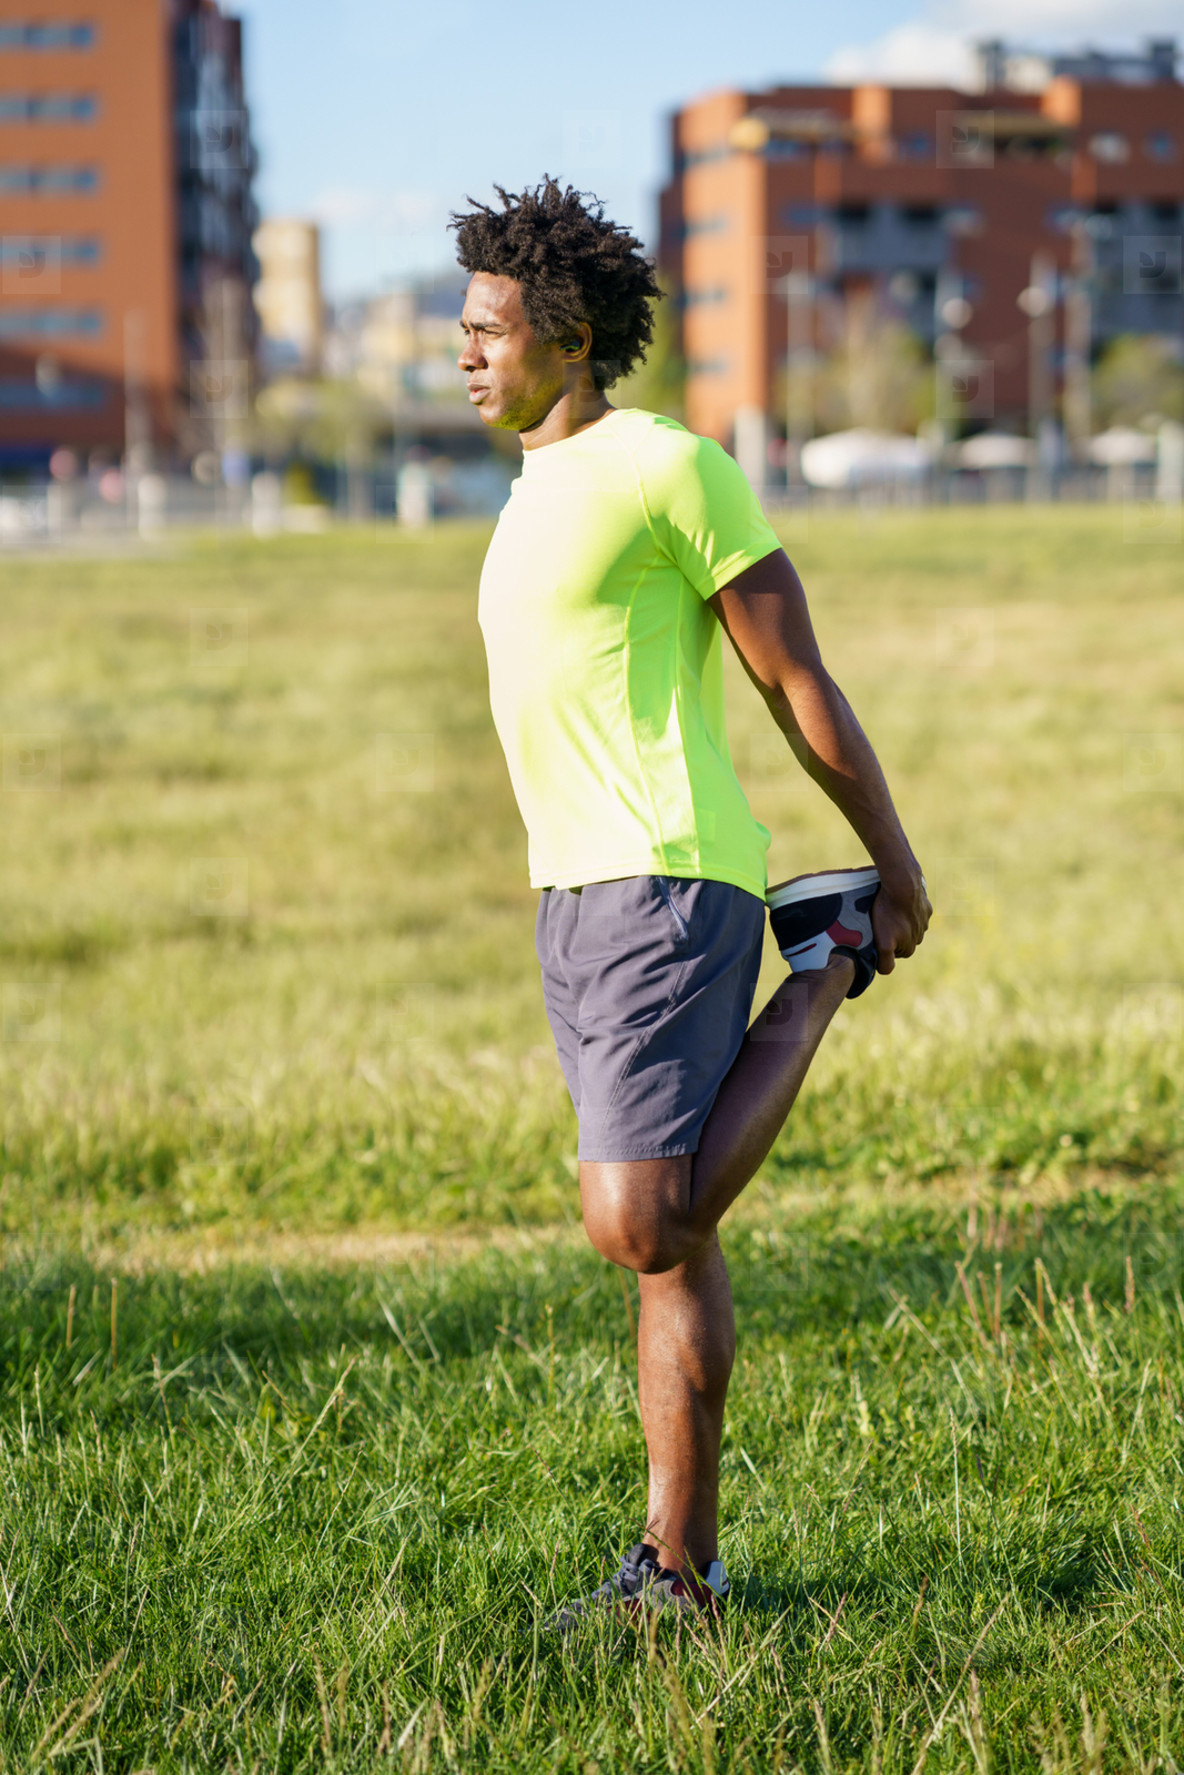 Black man stretching his quadriceps after running outdoors